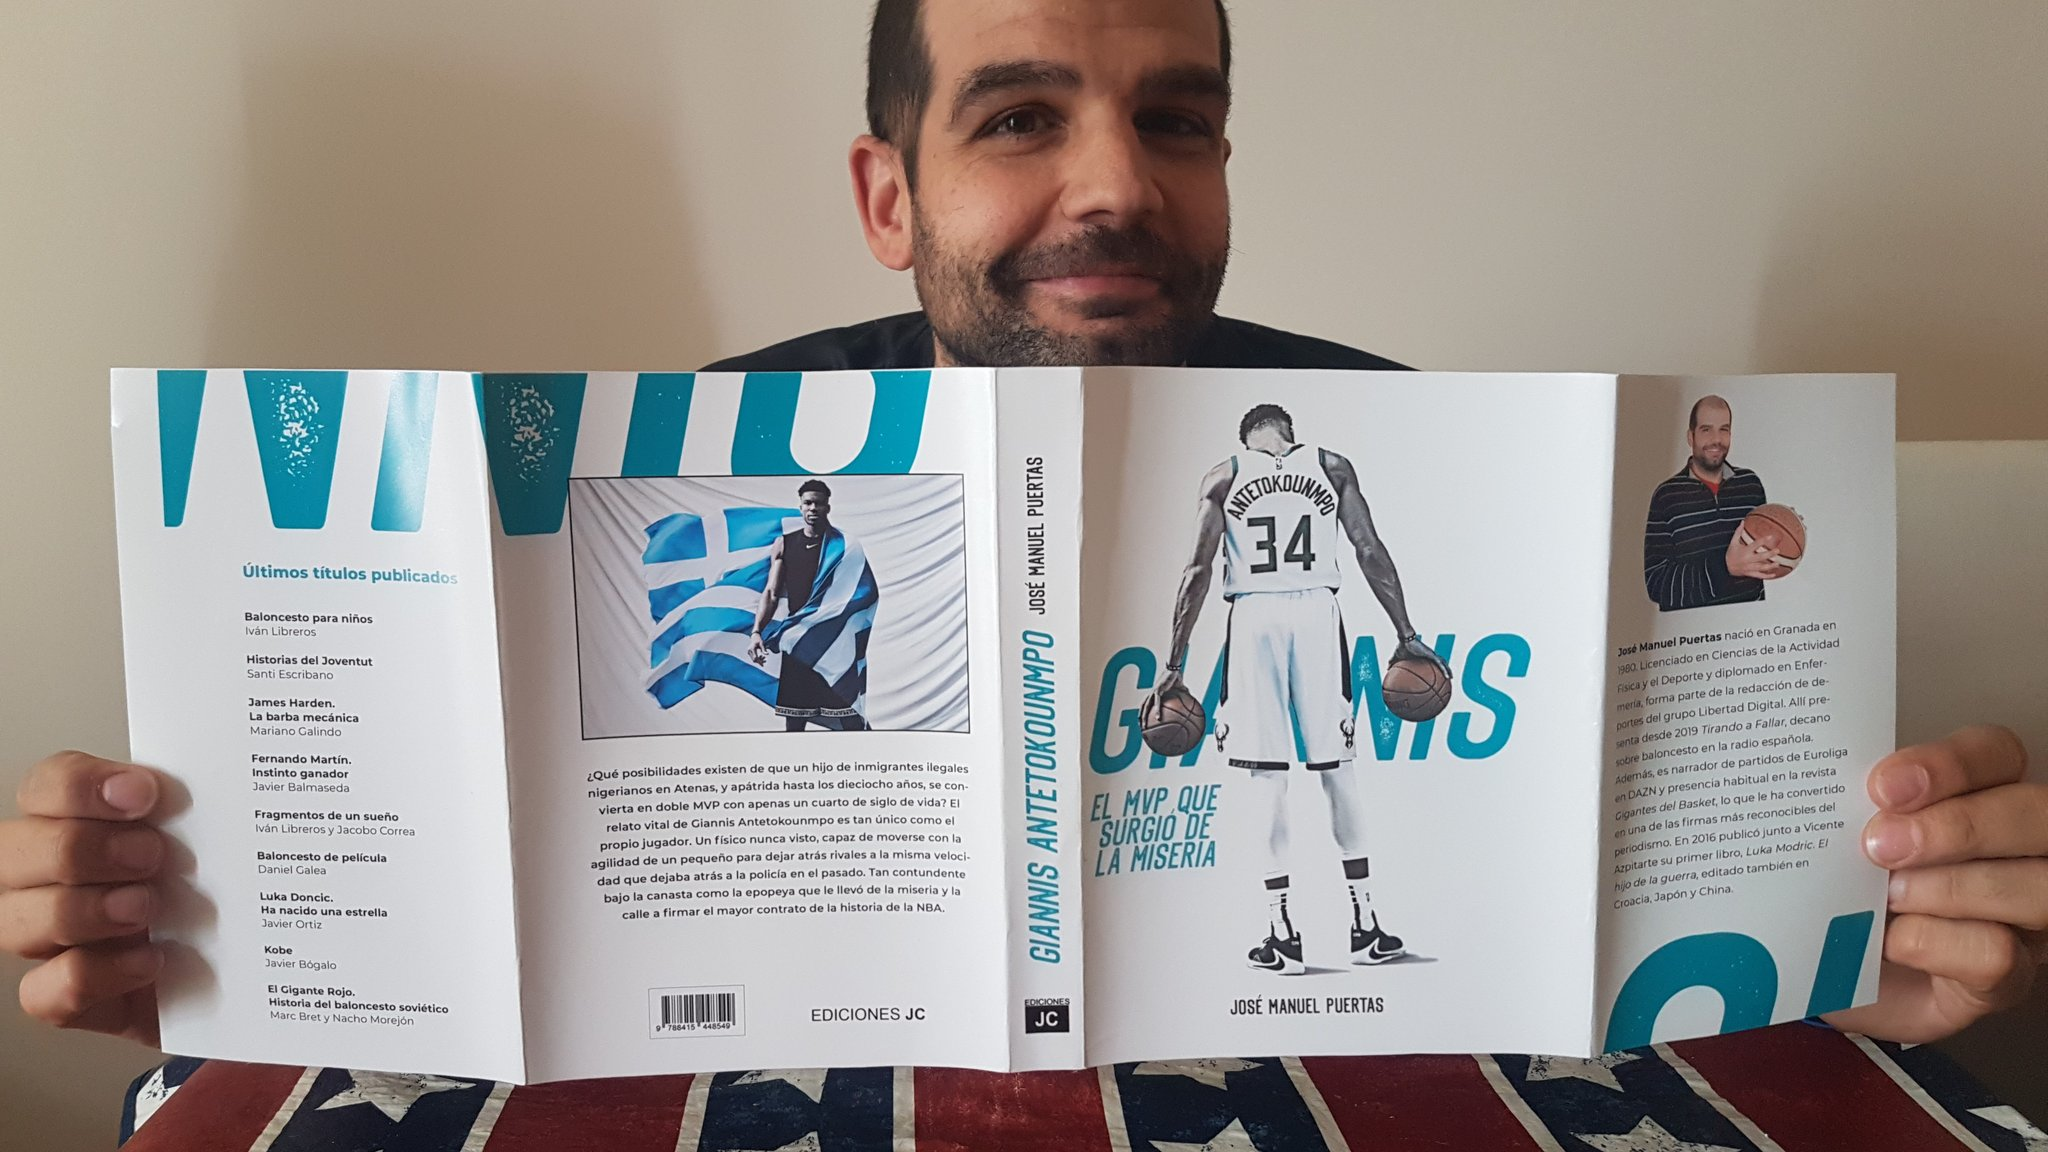 The first chapter of Antetokounmpo's book, complete and free